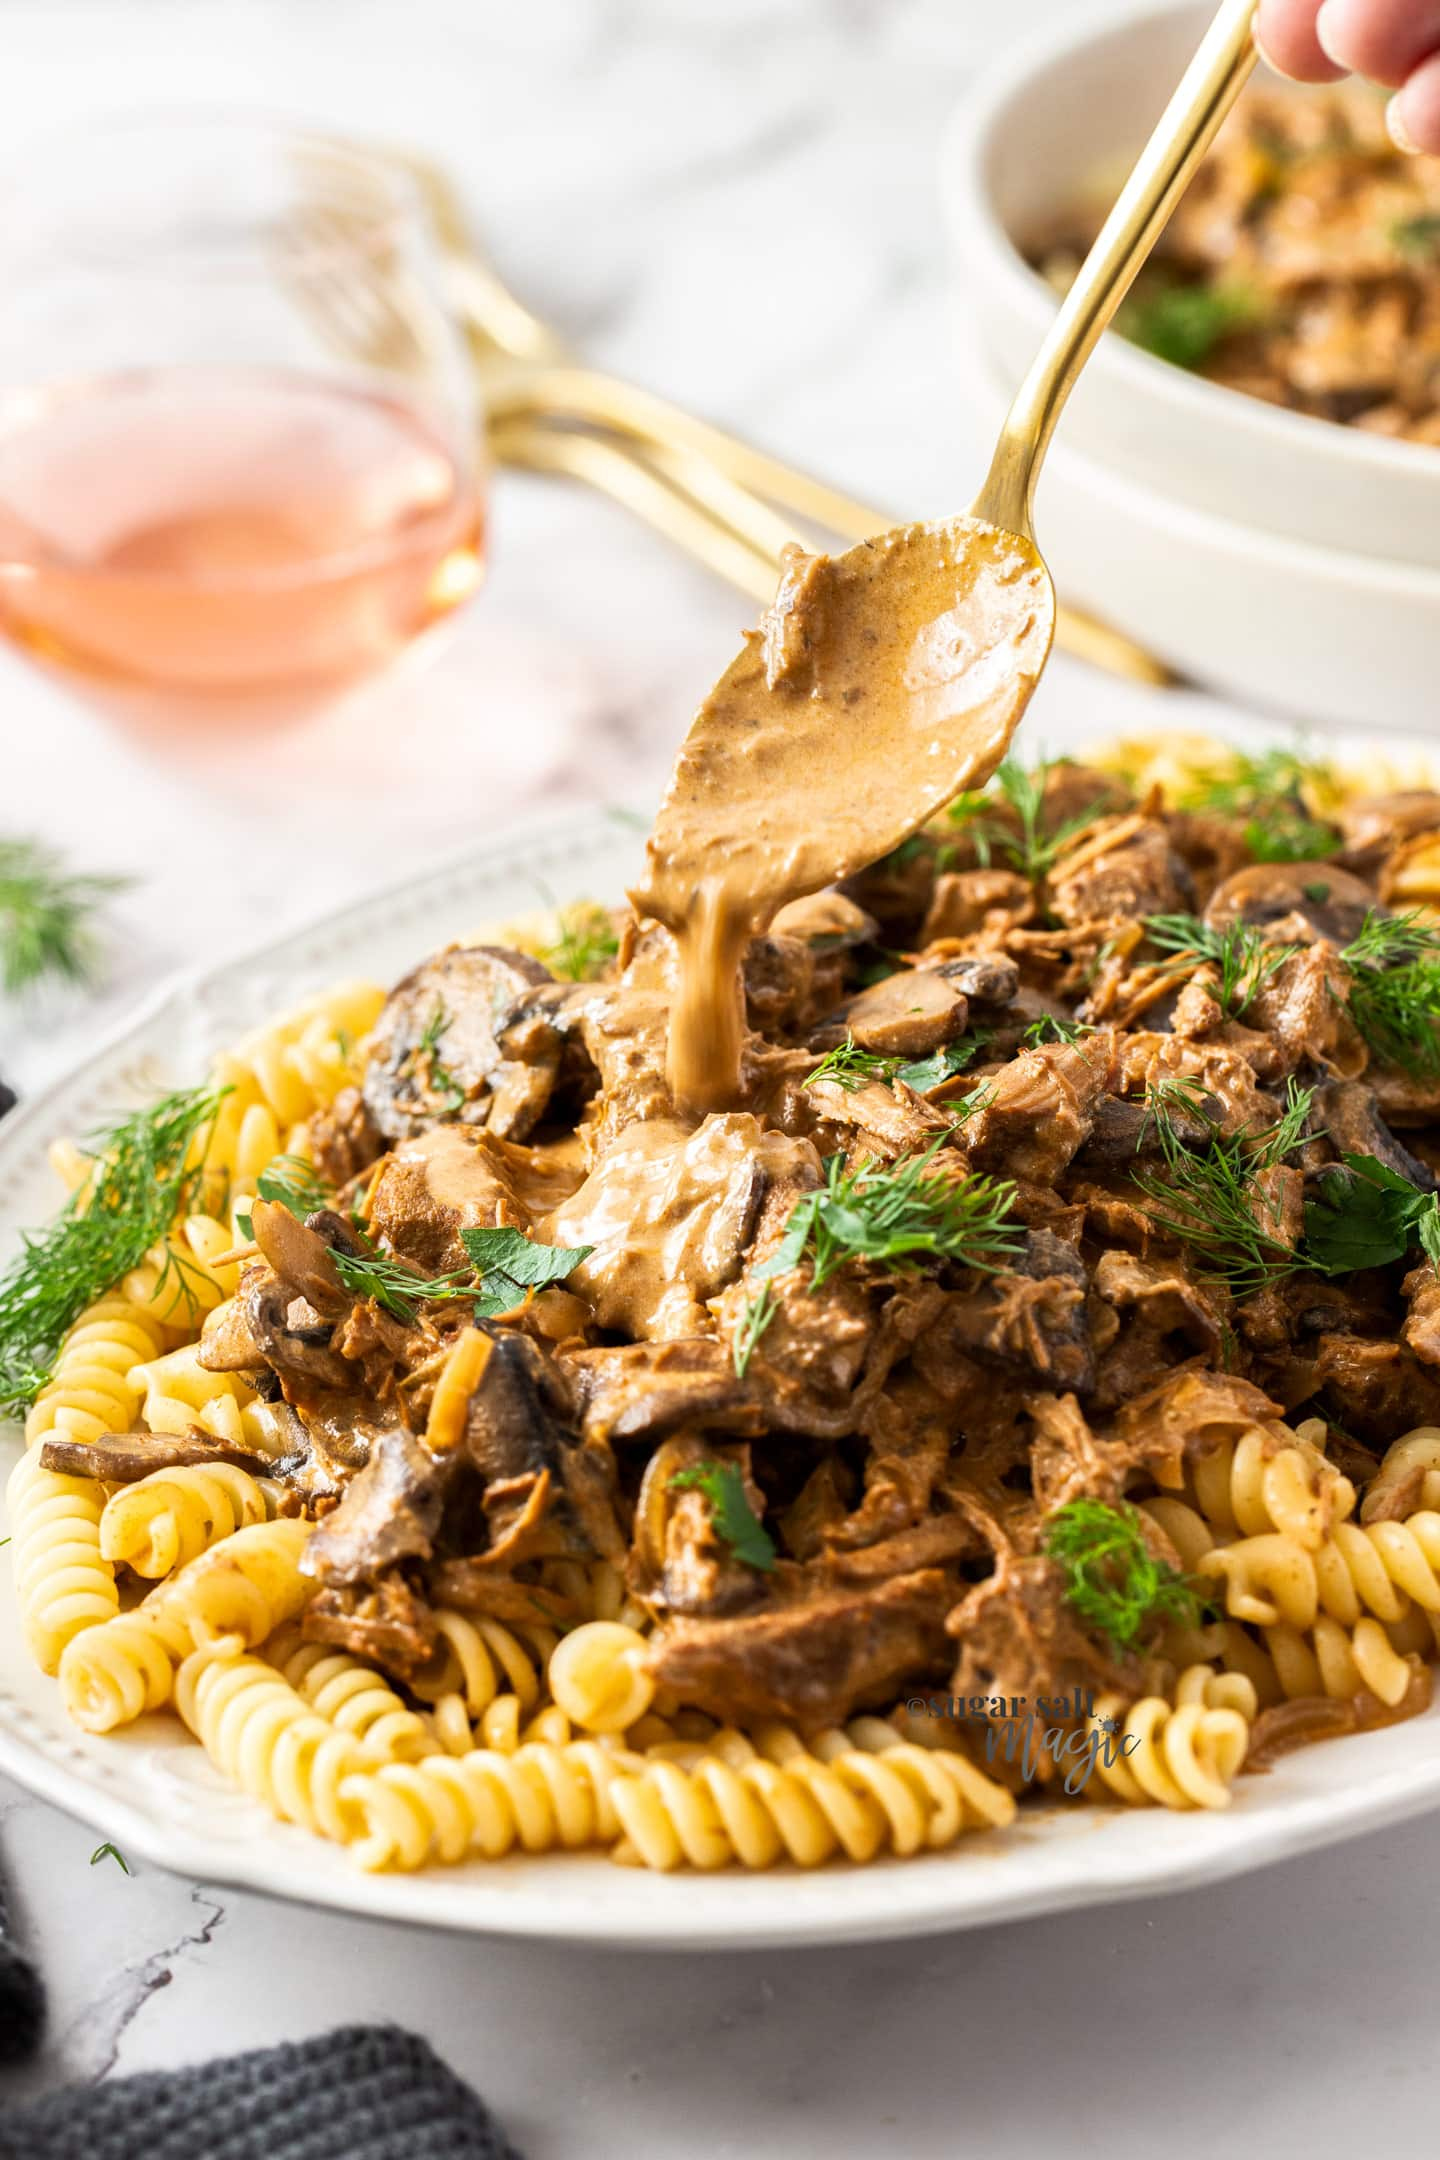 A spoon adding gravy to a white dish of beef and mushrooms.